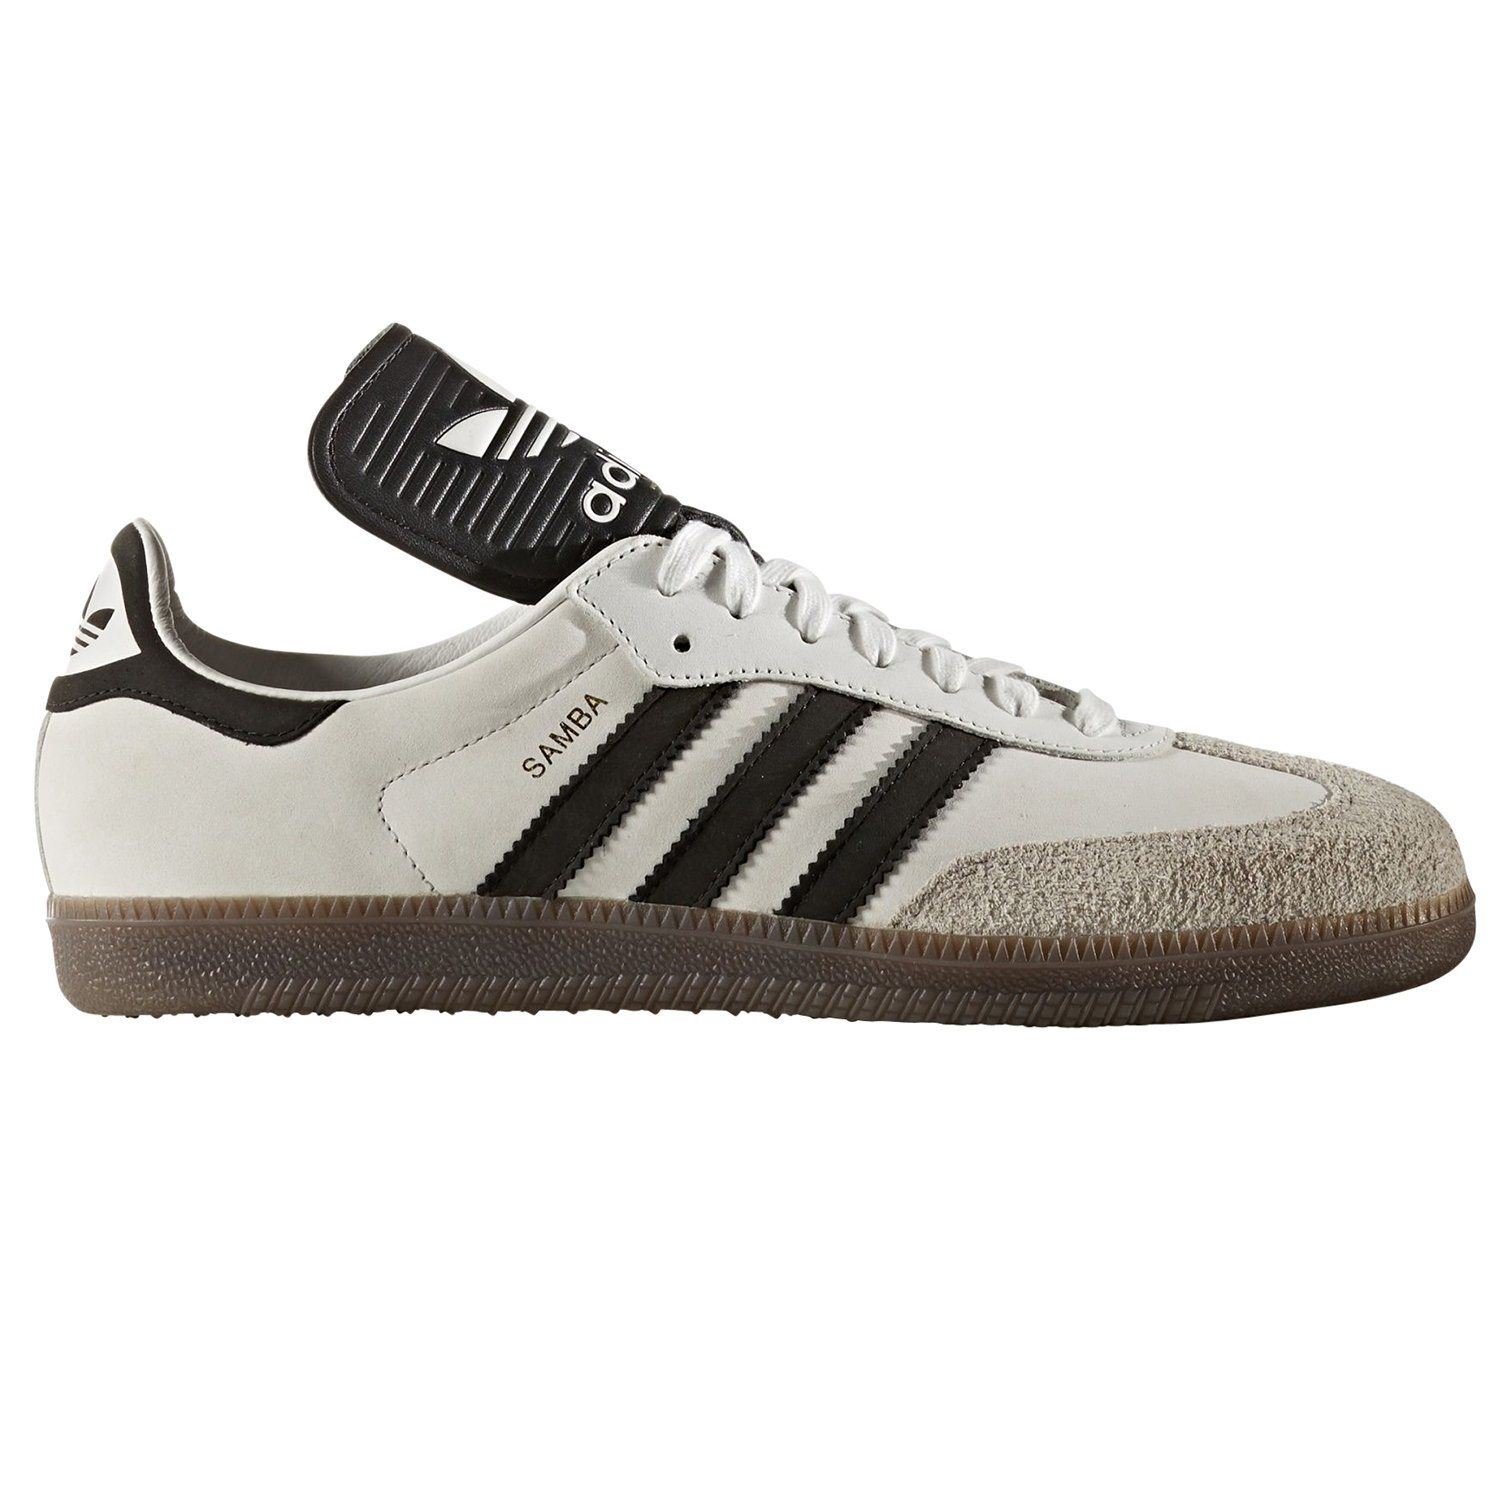 quality products recognized brands nice cheap Details about adidas ORIGINALS SAMBA OG MADE IN GERMANY TRAINERS WHITE  RETRO VINTAGE RARE NEW